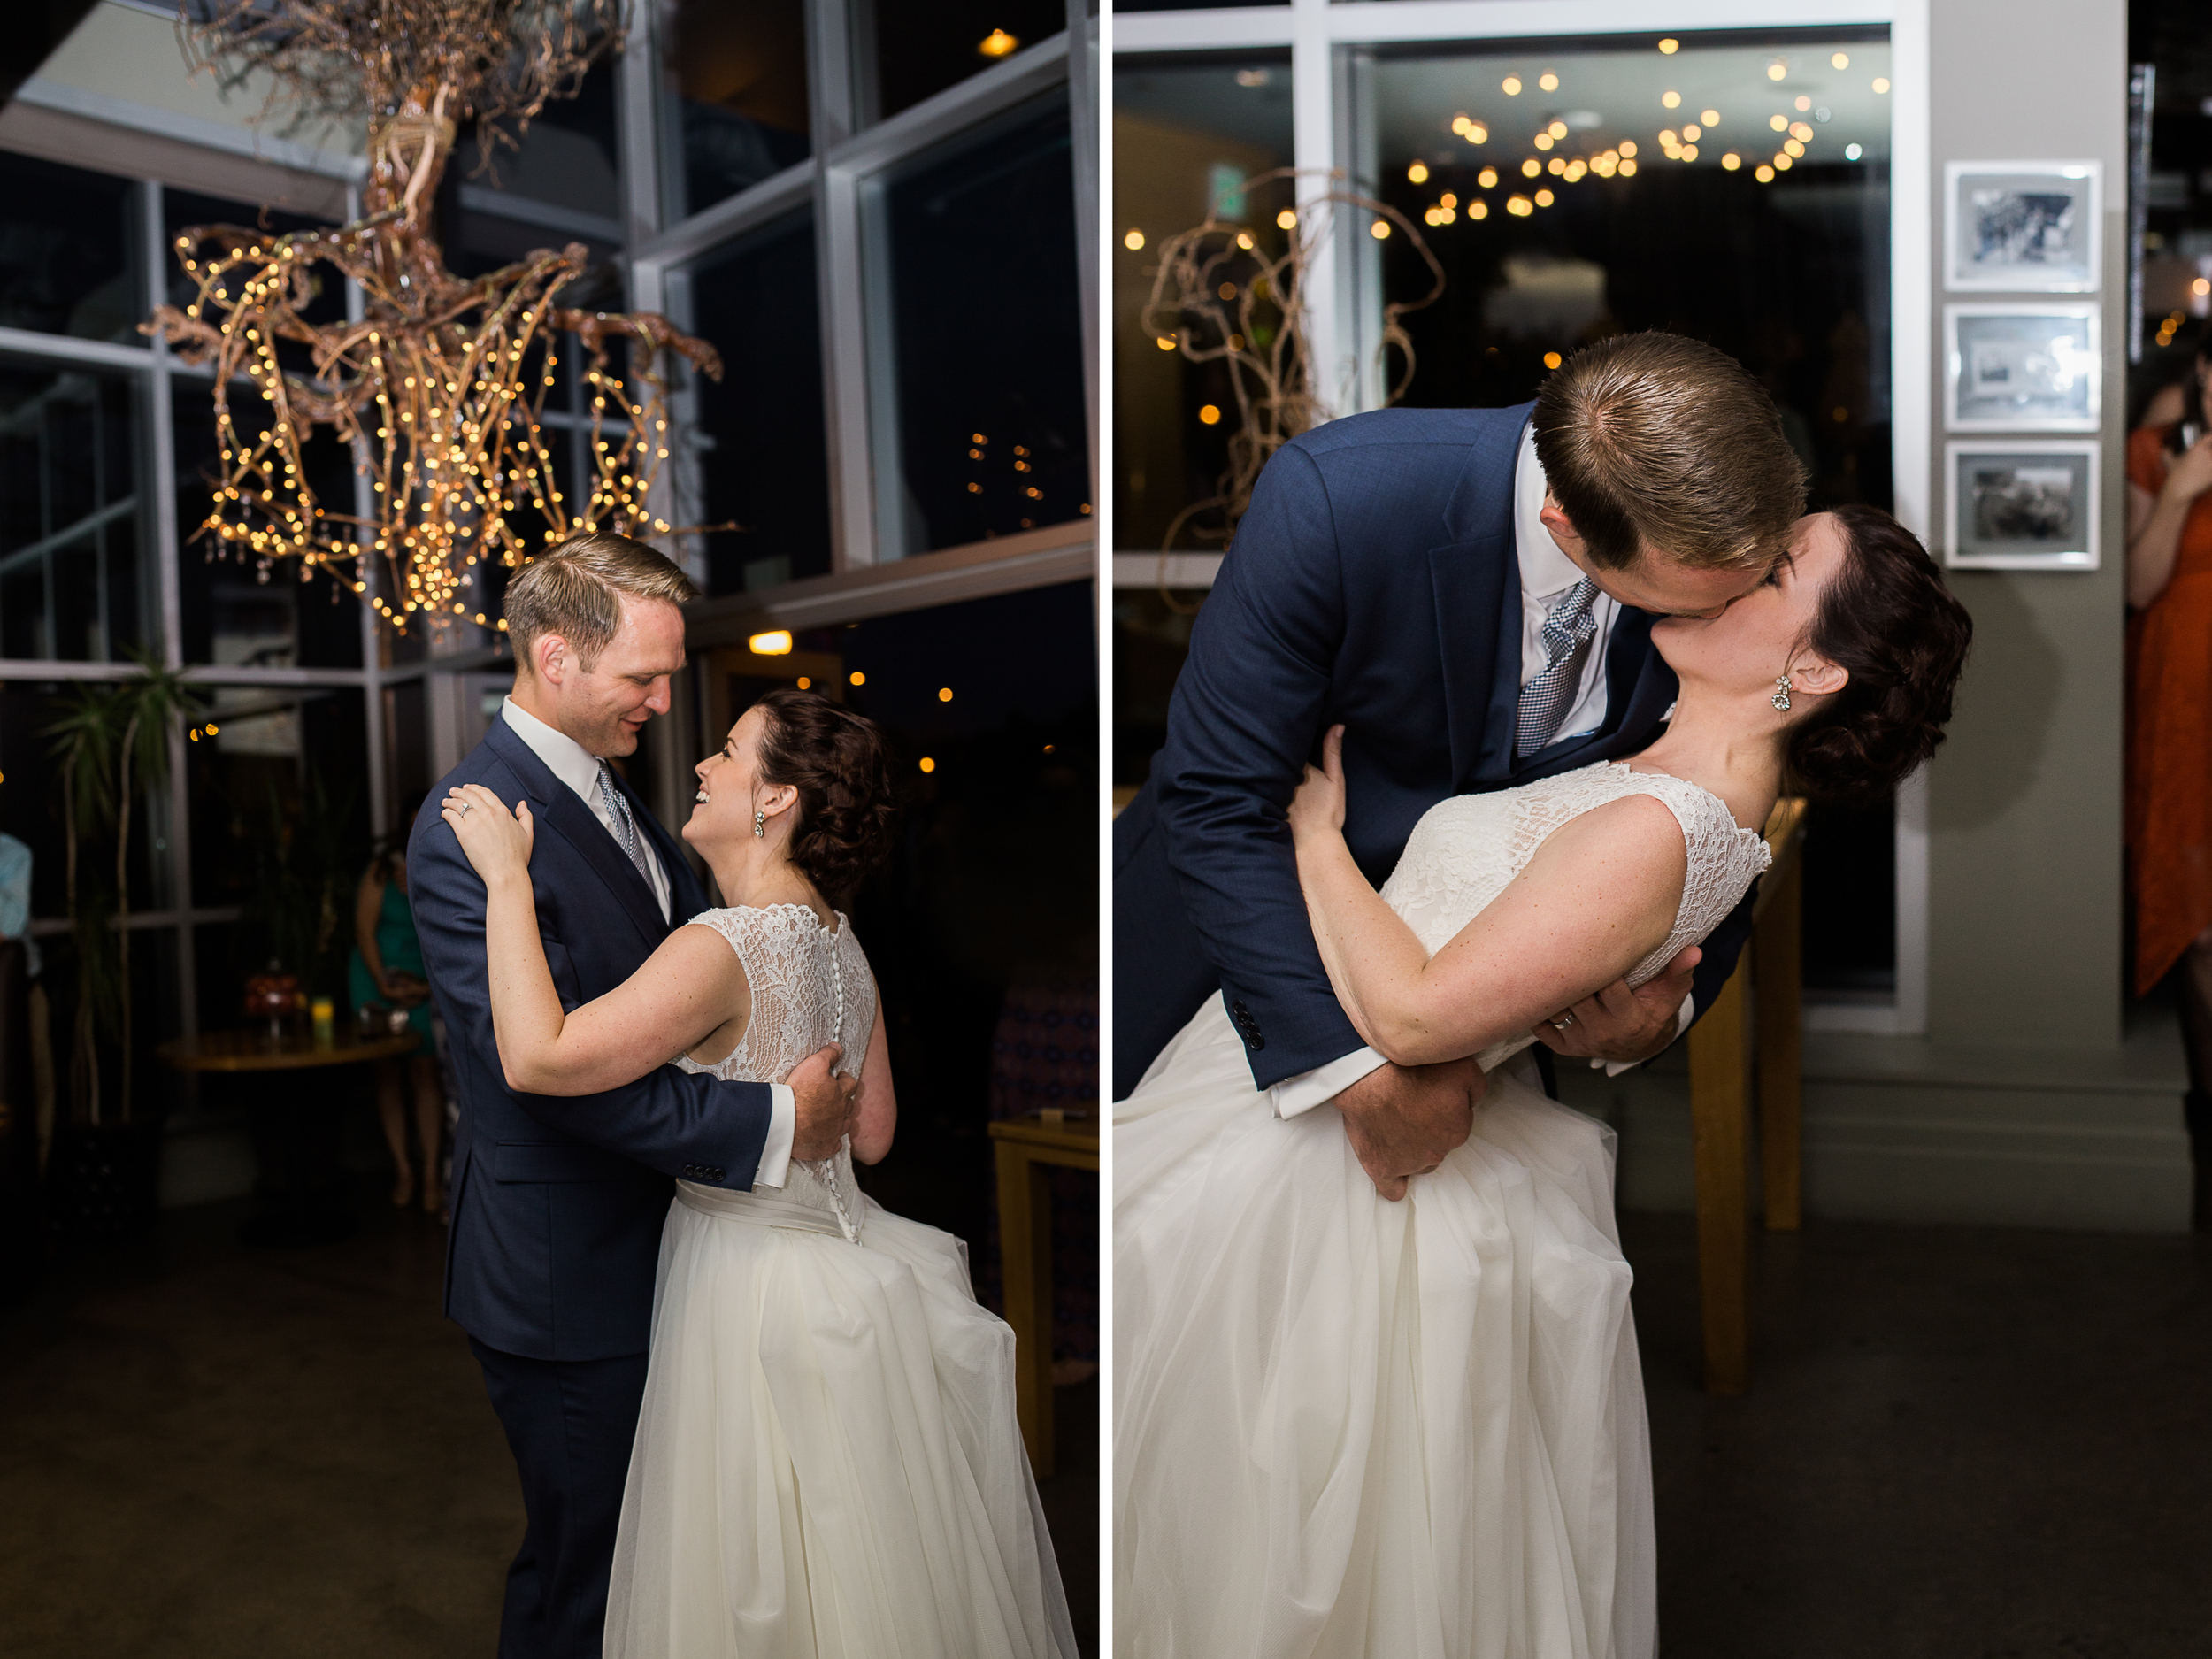 Coohills Wedding Photographer - first dance inside Coohills at night